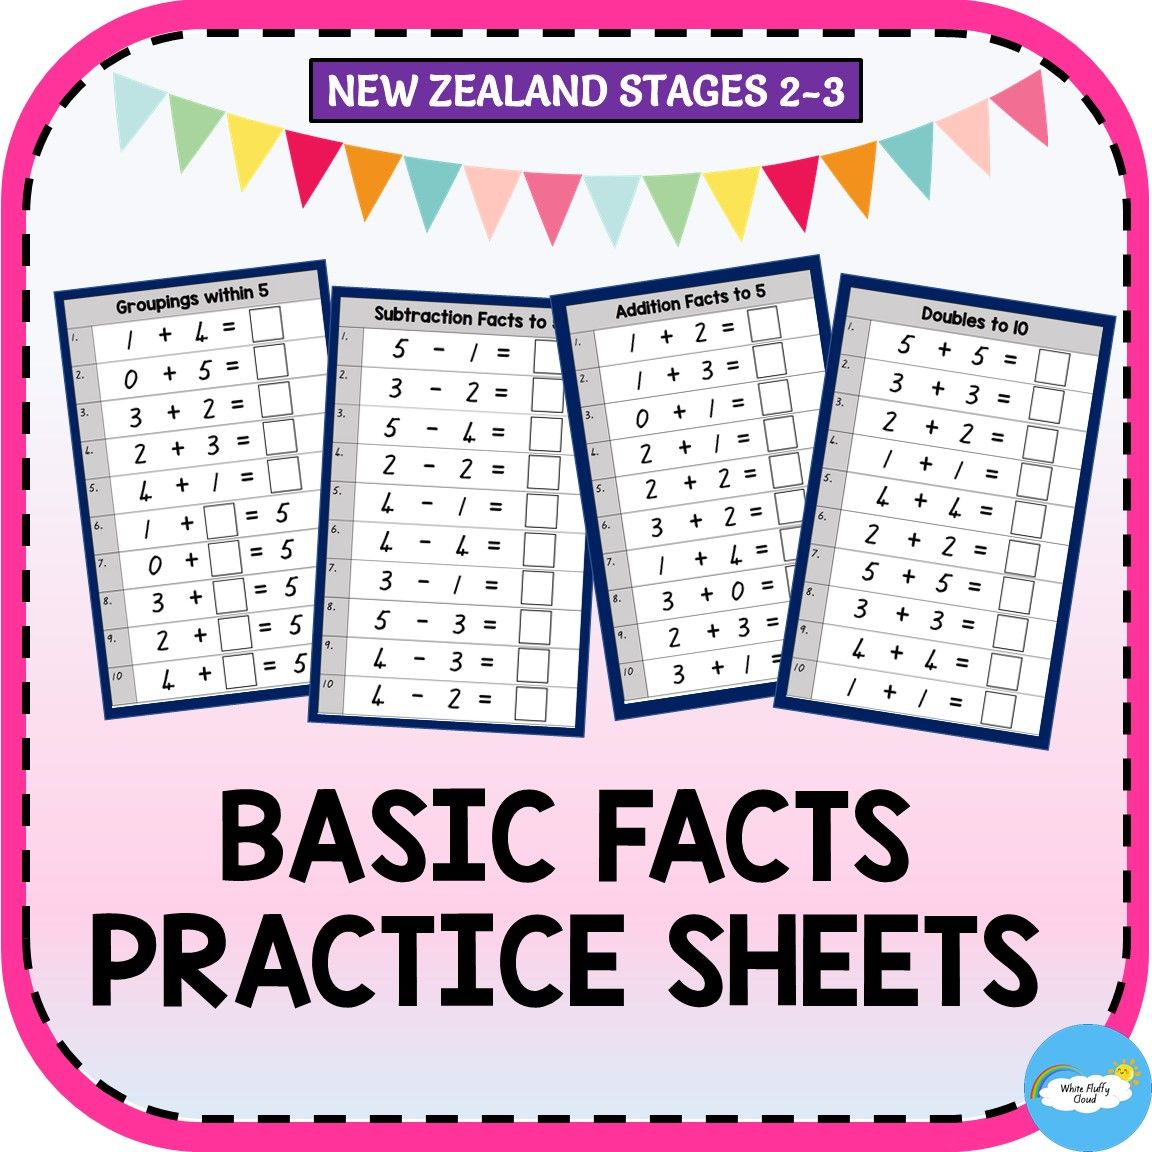 Basic Facts Practice Sheets Nz Stages 2 3 Basic Facts Practice Basic Facts Subtraction Facts